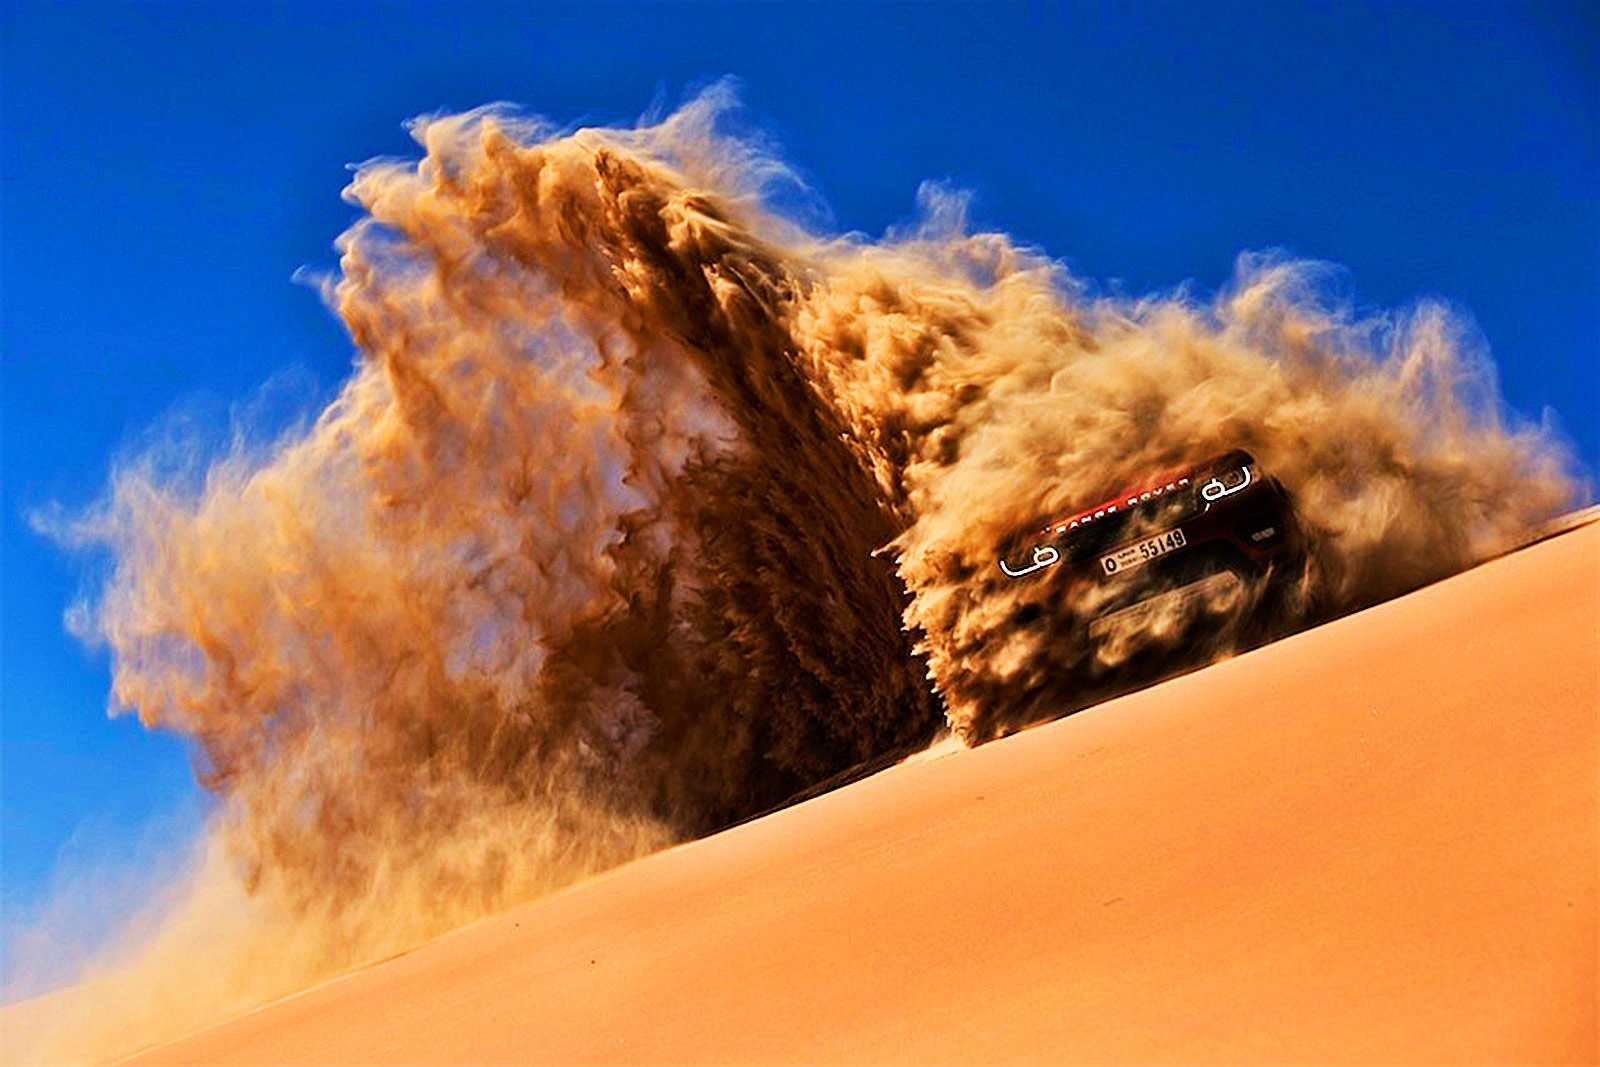 How to go to a desert jeep safari in Dubai